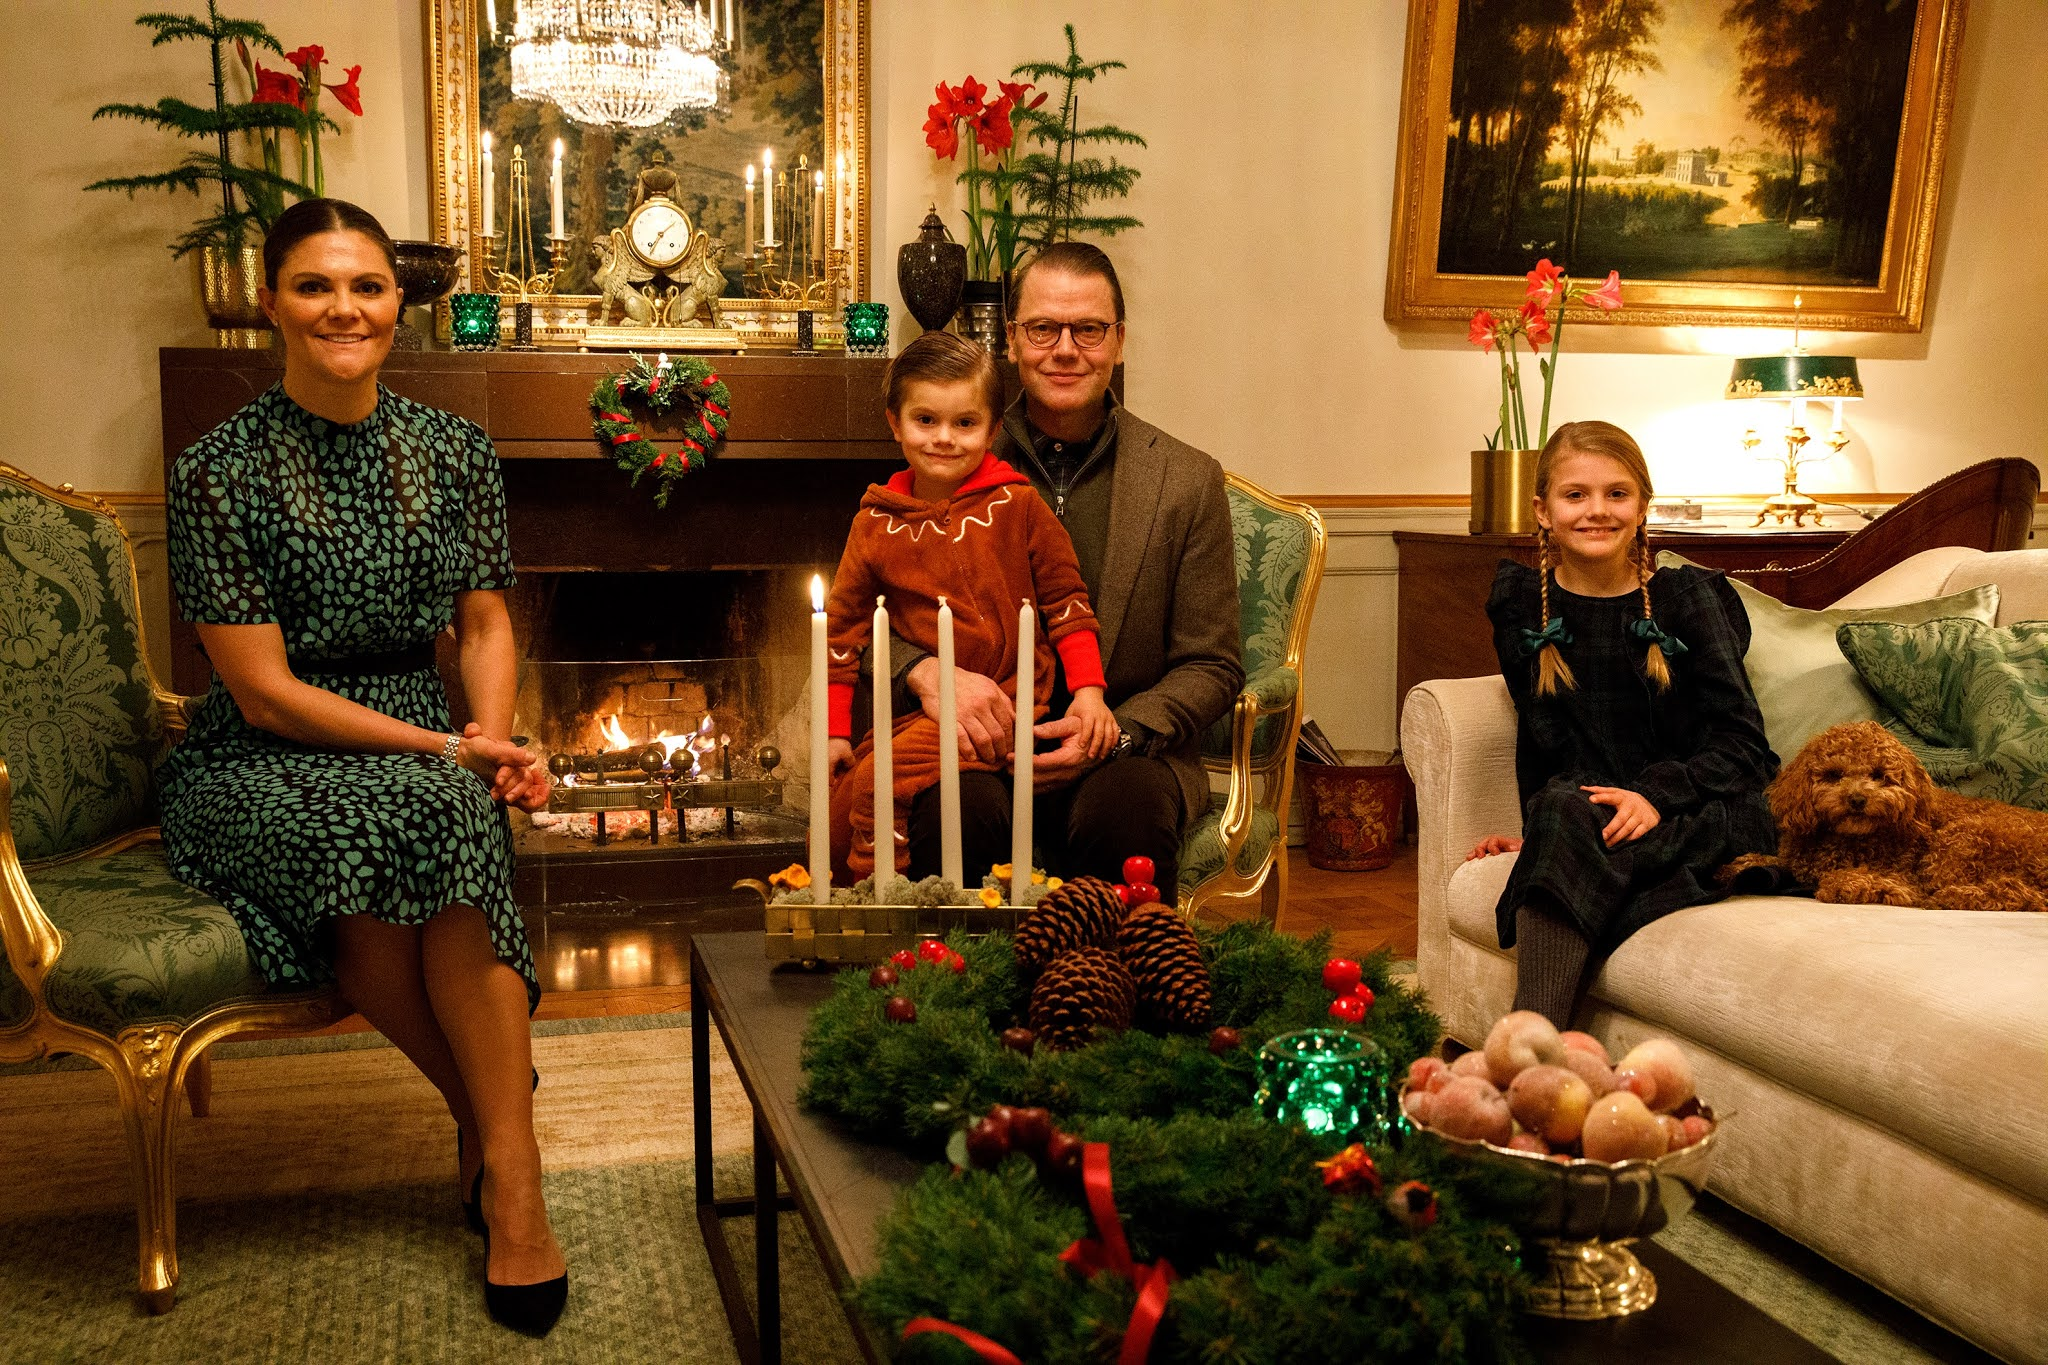 Crown Princess Victoria and Prince Daniel Tested Positive for COVID-19